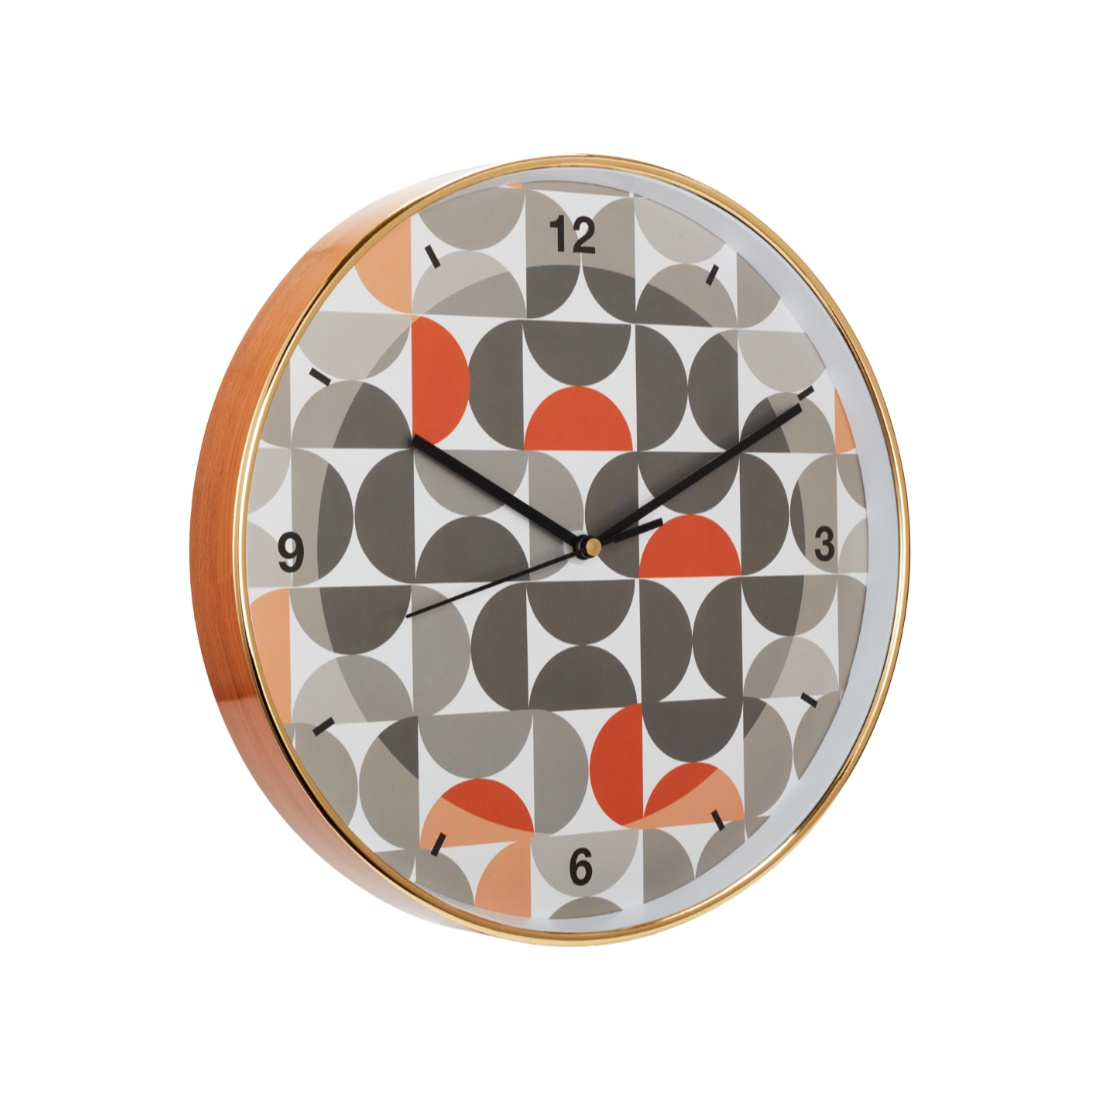 Aika Urbane Half Circle Clock Plastic Modern Clocks in Orange & Grey Colour by Living Essence